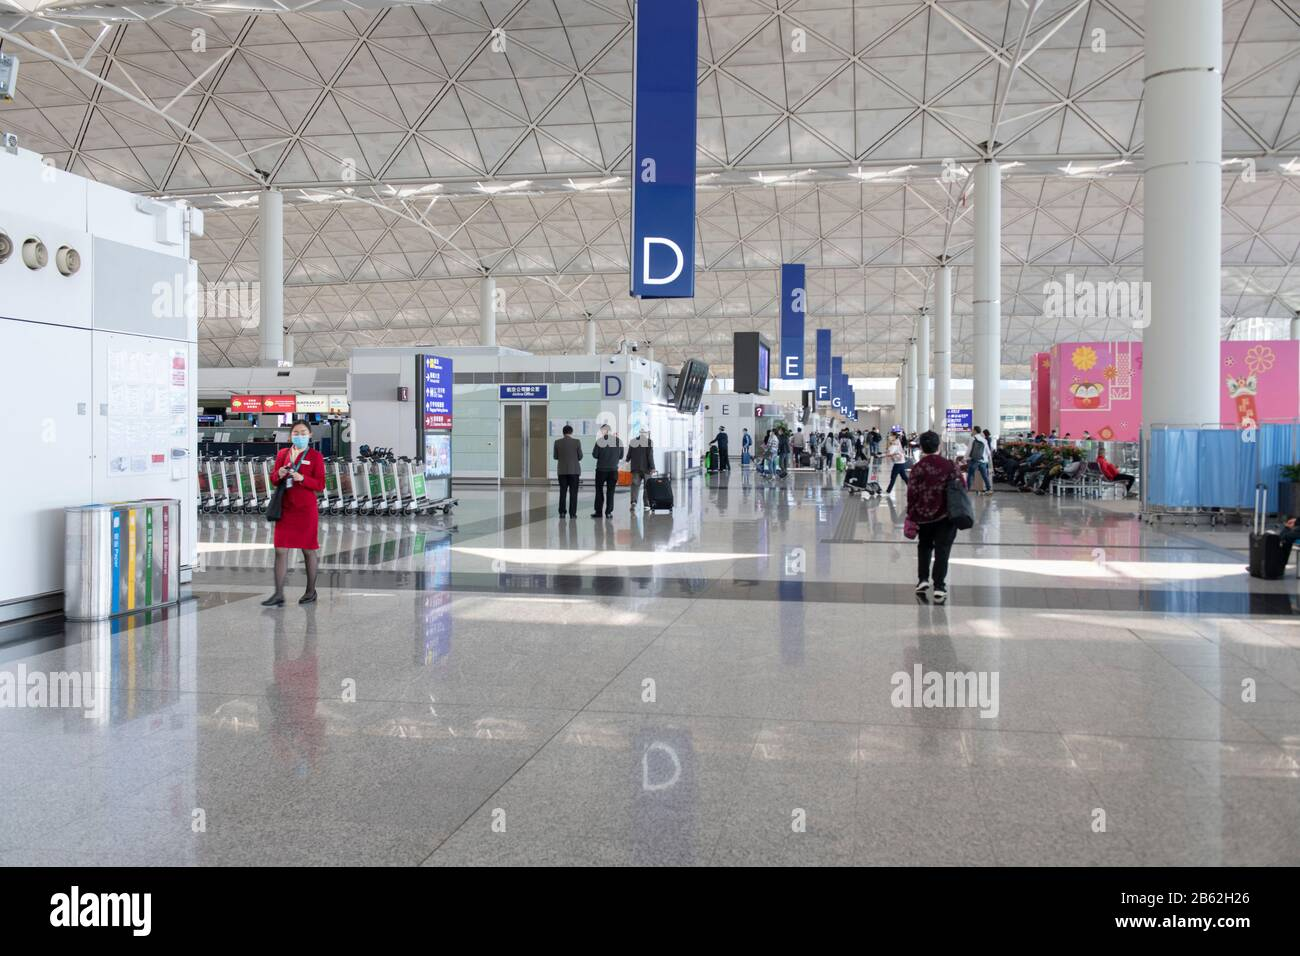 Hong Kong,China:06 Mar,2020. Hong Kong International Airport empty as Cover-19 takes its toll on the travel industry Jayne Russell/Alamy Stock Image Stock Photo